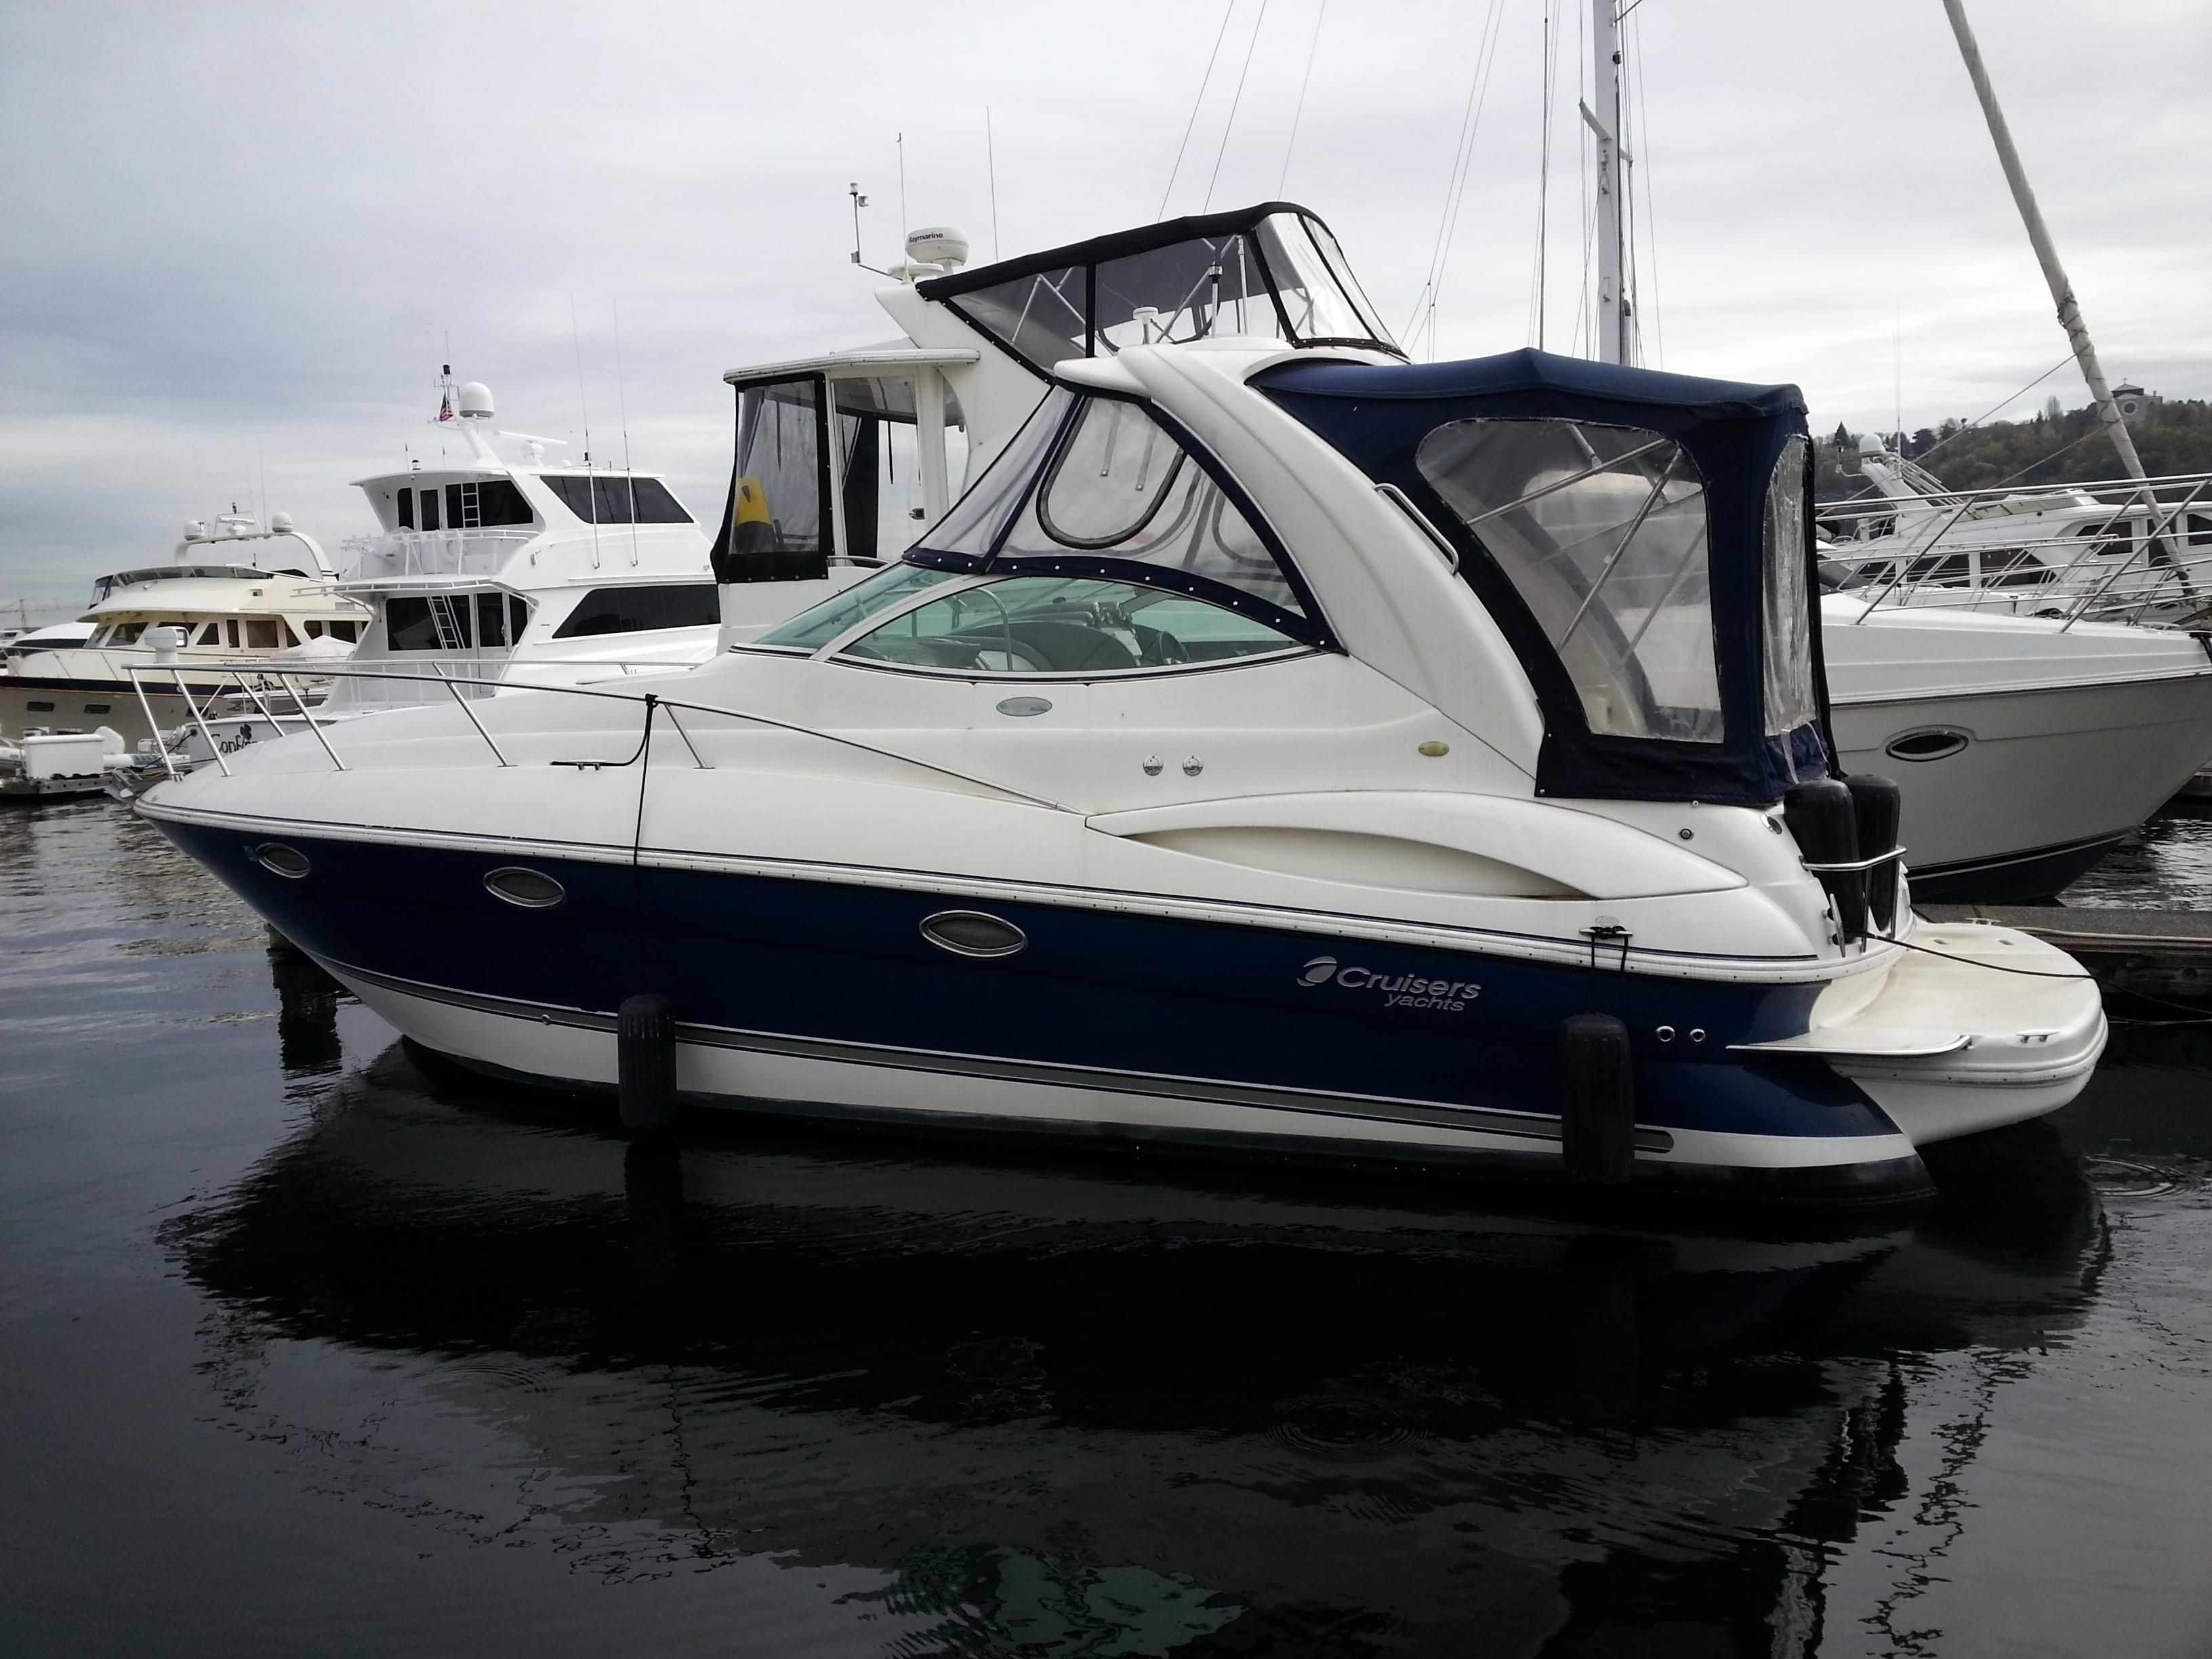 2005 Cruisers Yachts 300 Express Power Boat For Sale Www